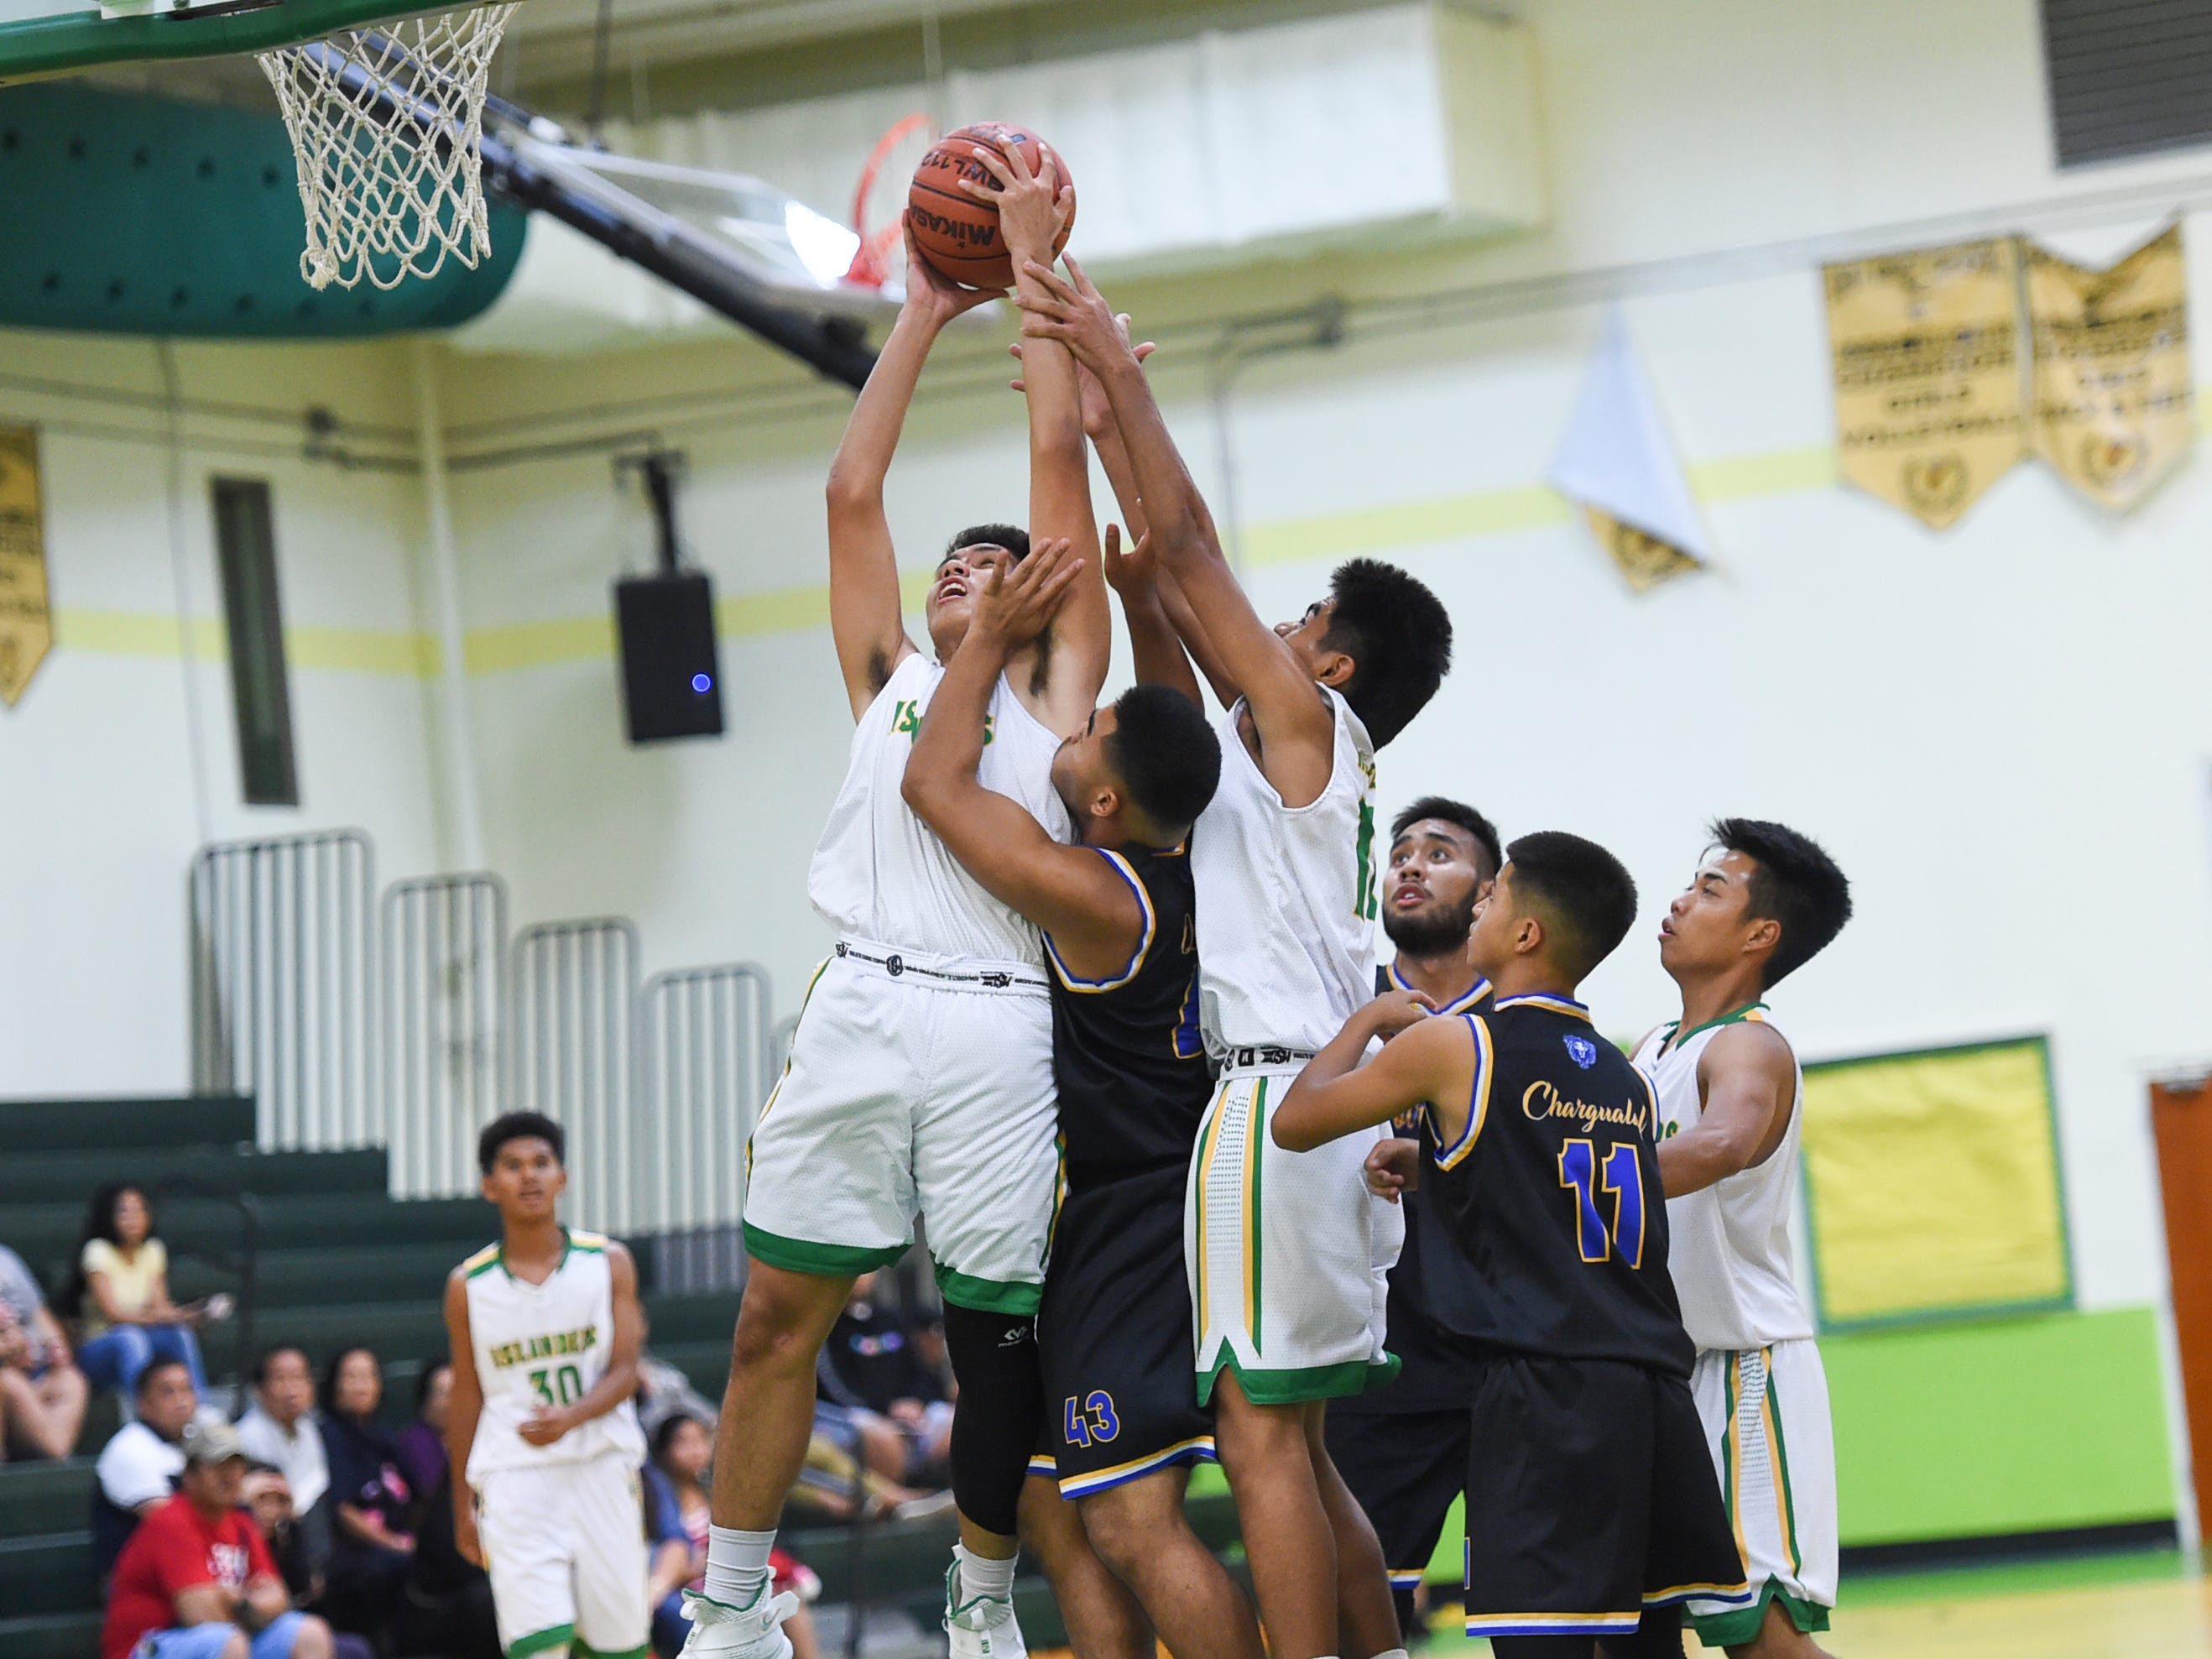 Notre Dame Royals and John F. Kennedy Islanders players battle for a rebound during their Independent Interscholastic Athletic Association of Guam Boys' Basketball game at the JFK High School Gym, Feb. 2, 2019.